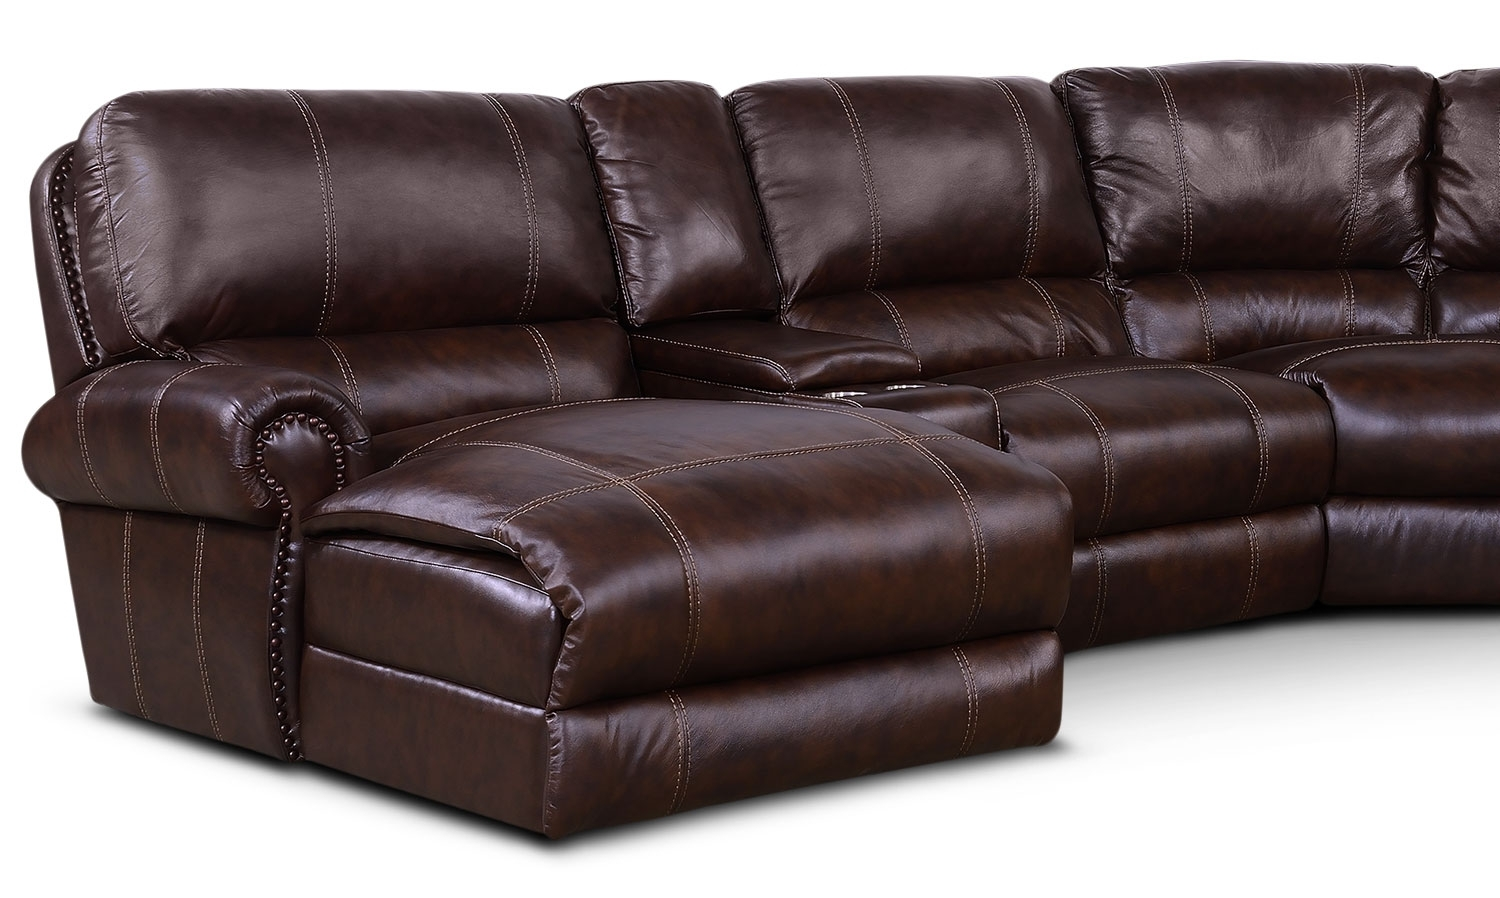 Dartmouth 6 Piece Power Reclining Sectional W/ Left Facing Chaise Throughout Norfolk Chocolate 3 Piece Sectionals With Laf Chaise (View 10 of 25)